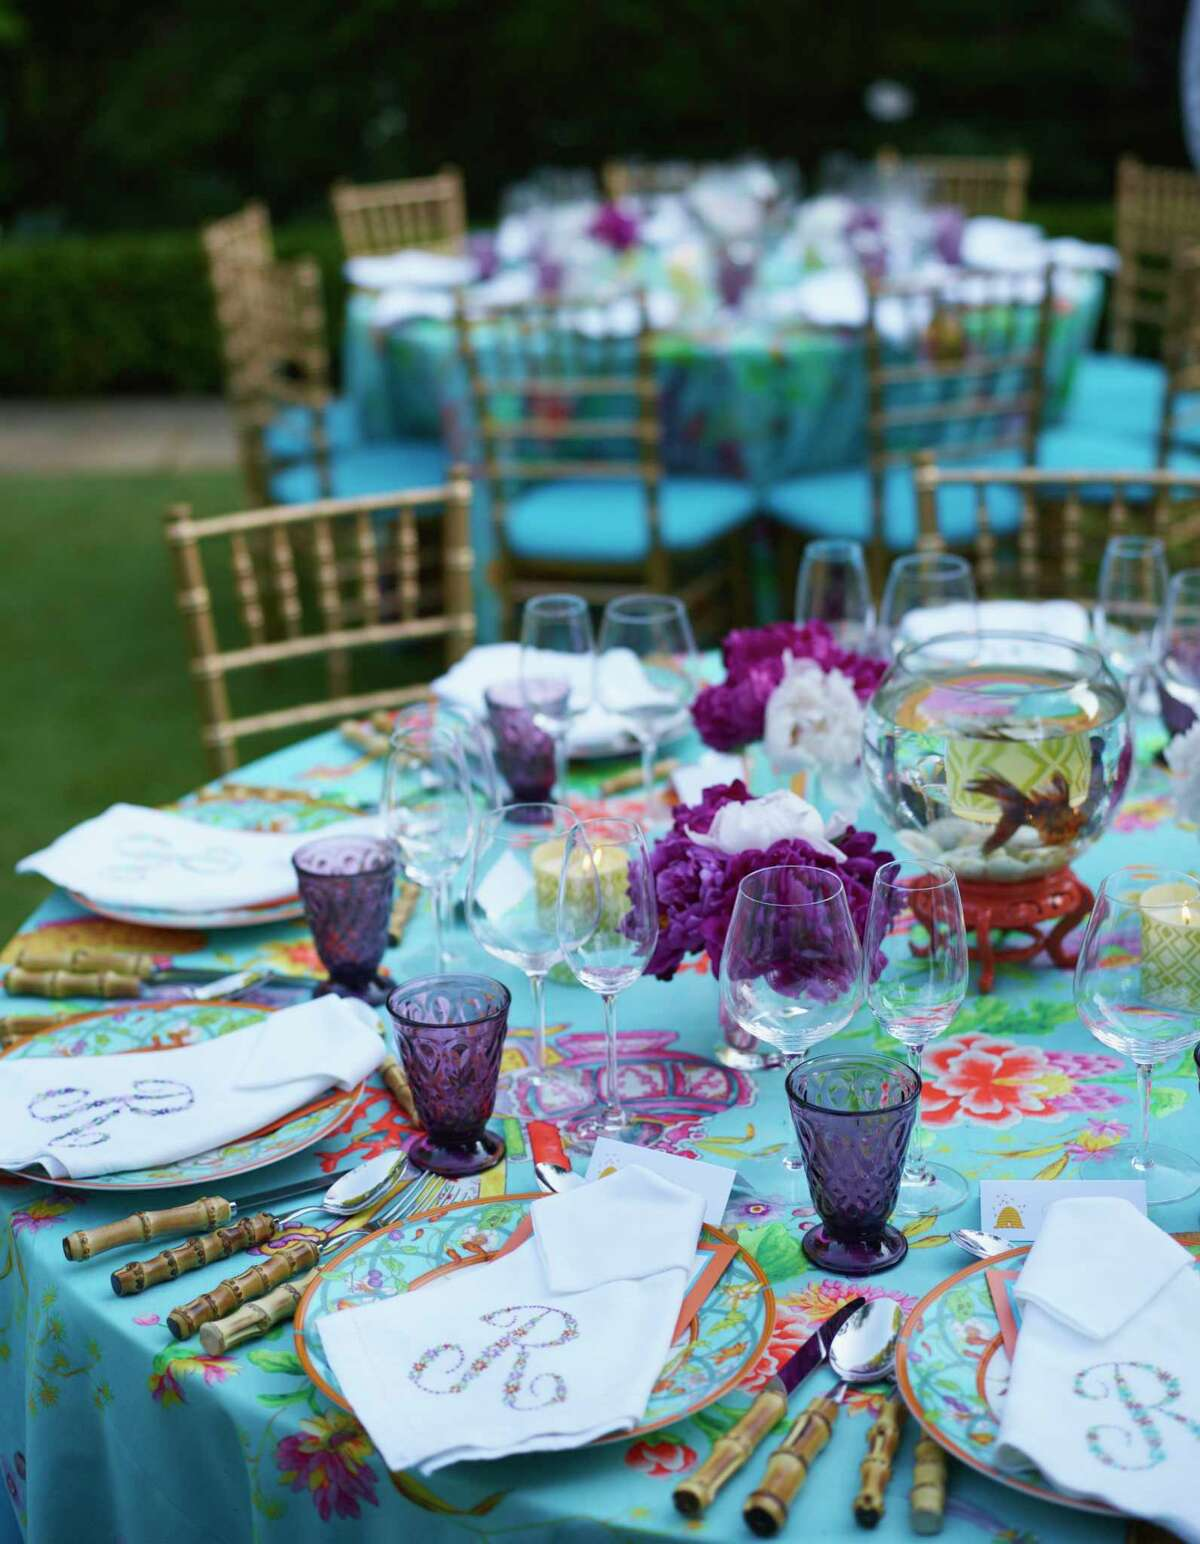 """Dinner parties require a well-set table. Provide cover if dining outdoors, and always use flowers, even if they're planted in terra cotta pots, saysDanielle Rollins, the author of """"Soiree: Entertaining with Style."""""""